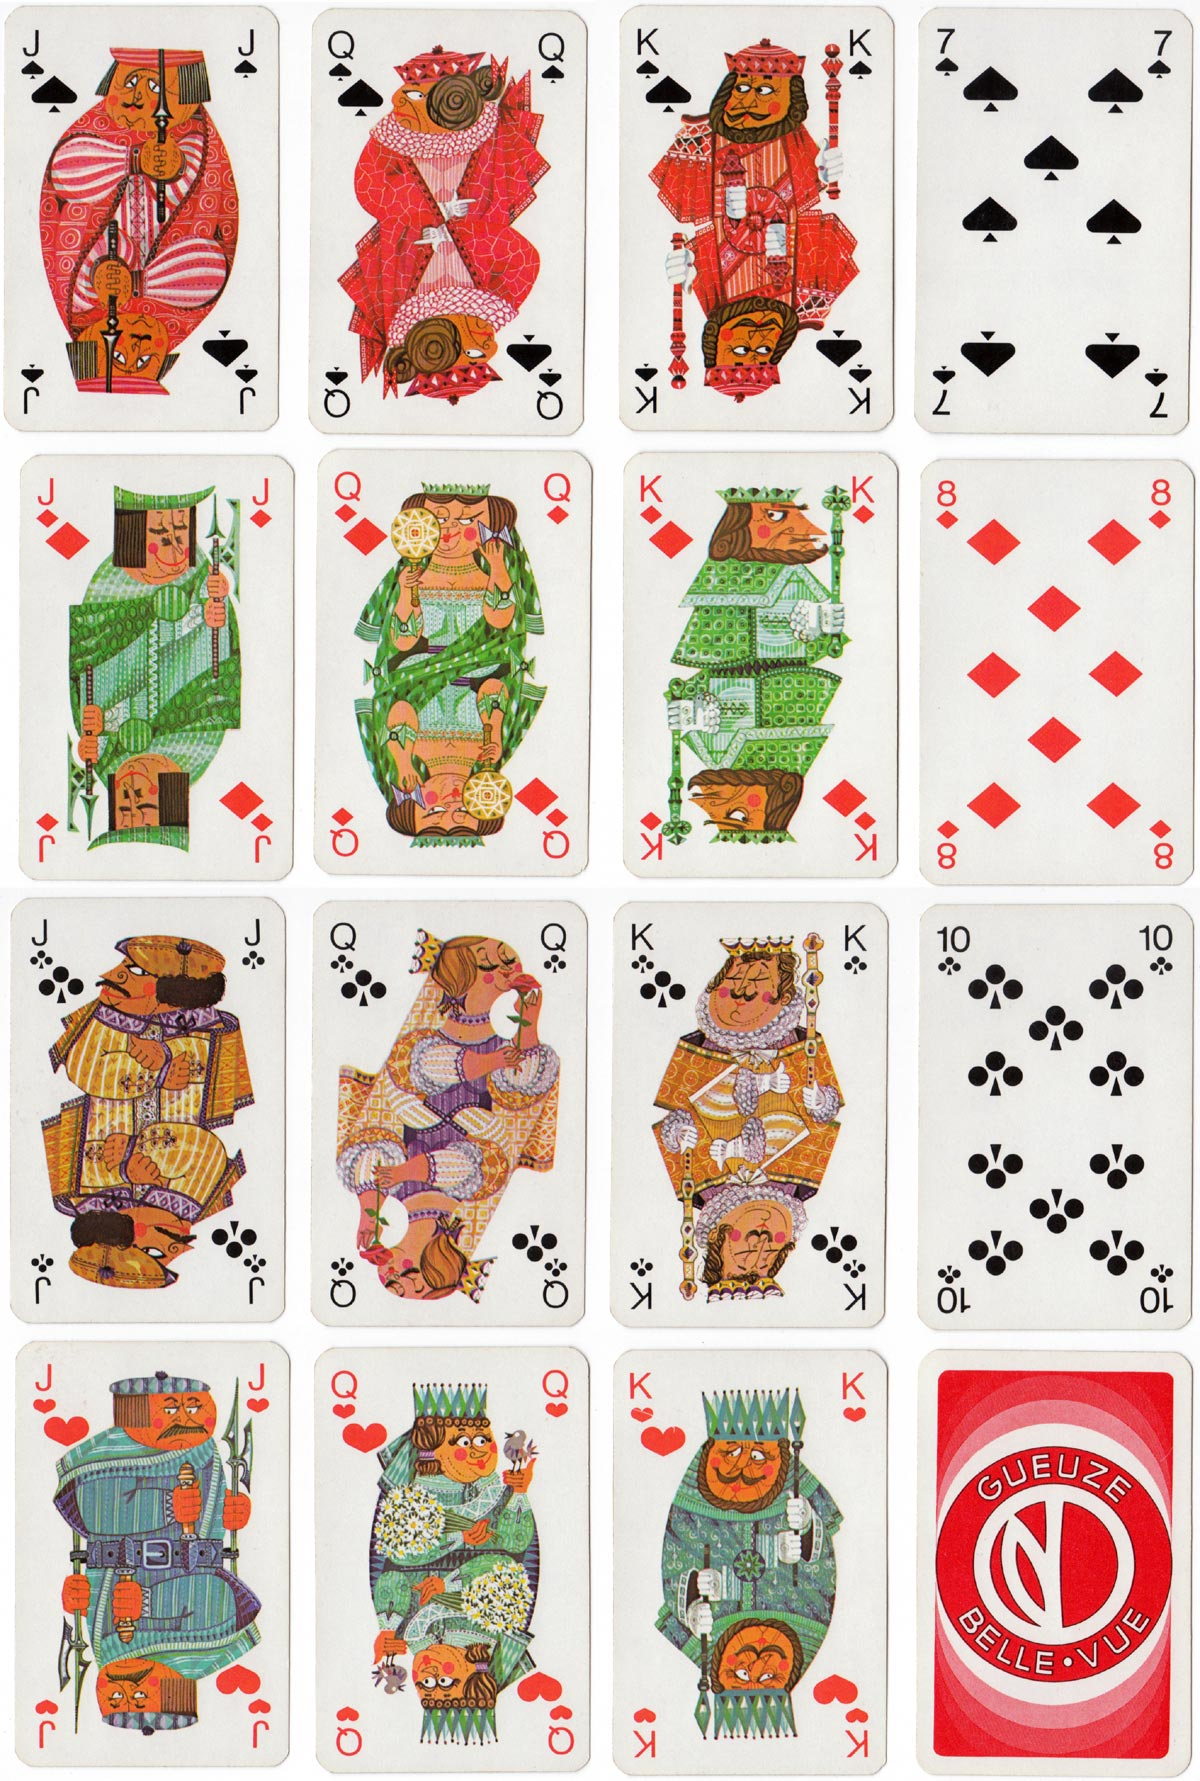 Promotional playing cards for Brasserie Belle-Vue designed by Wim Simons, Belgium, c.1969